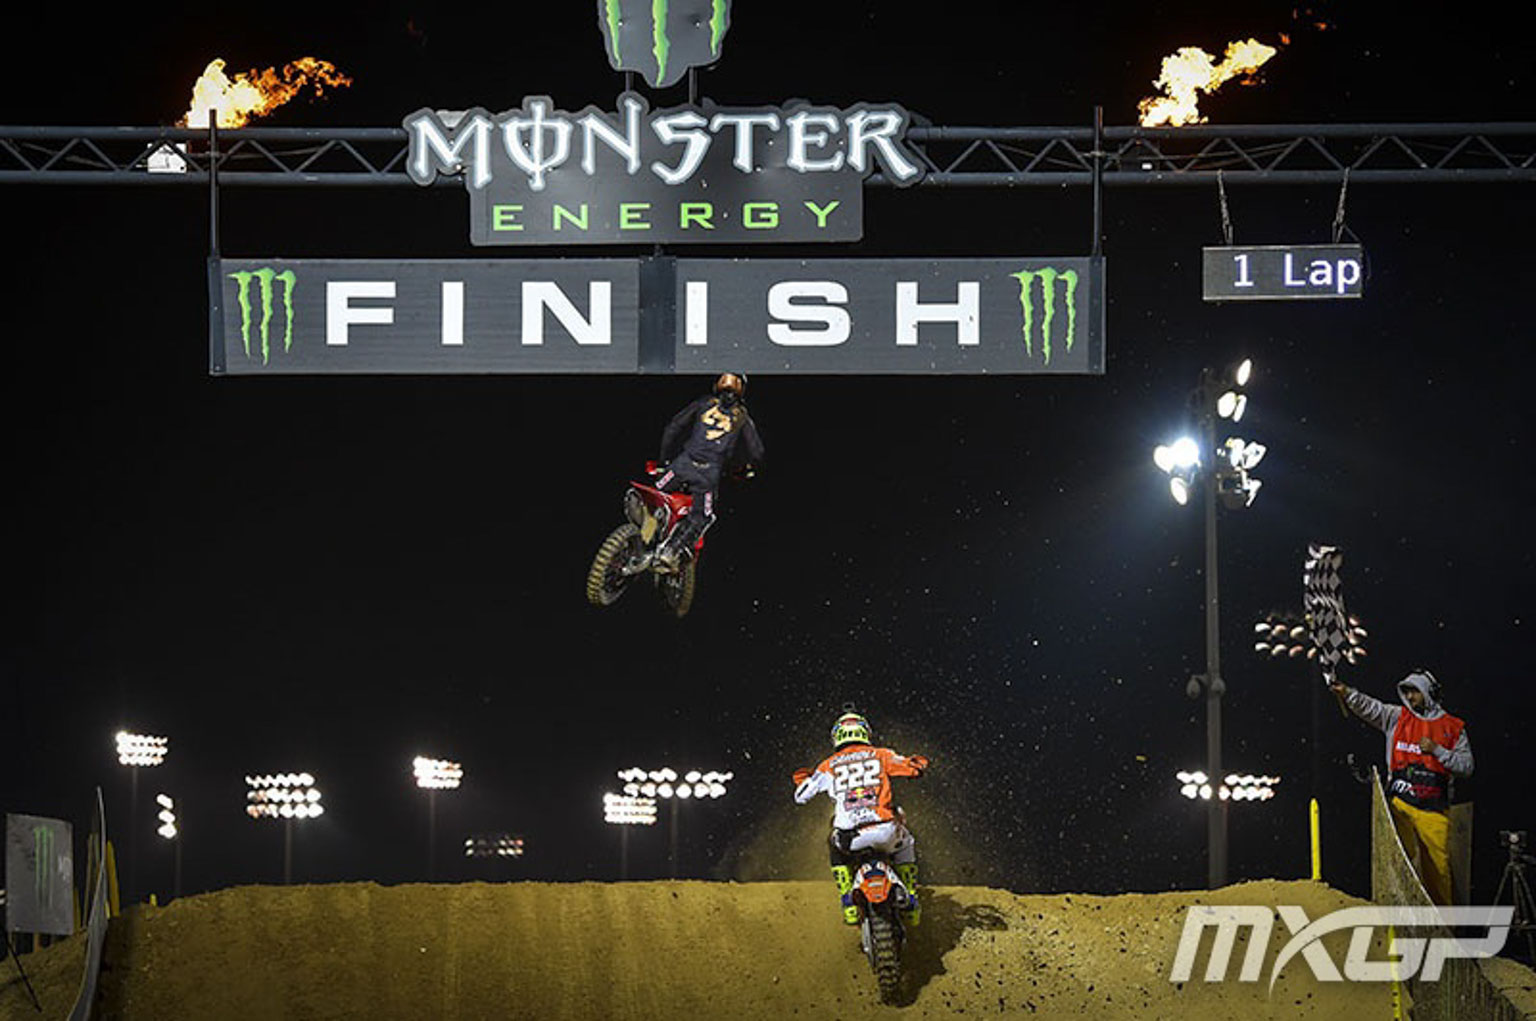 Cairoli chases Gajser over the finish line